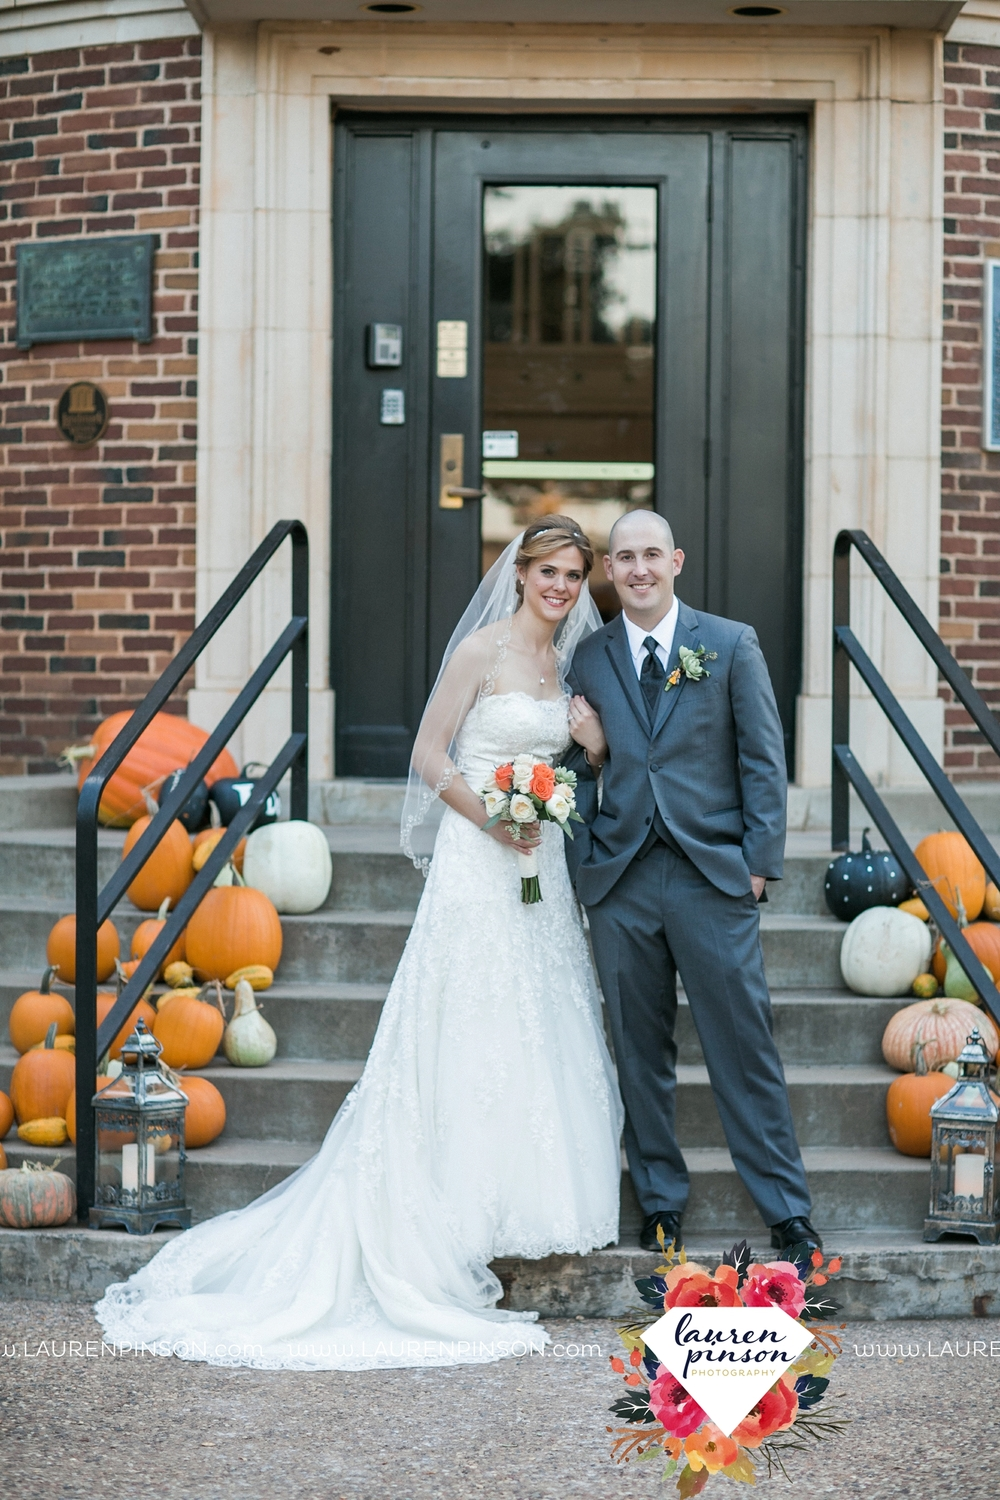 kemp-center-for-the-arts-wichita-falls-texas-wedding-photographer-fall-wedding-pumpkins-176.jpg